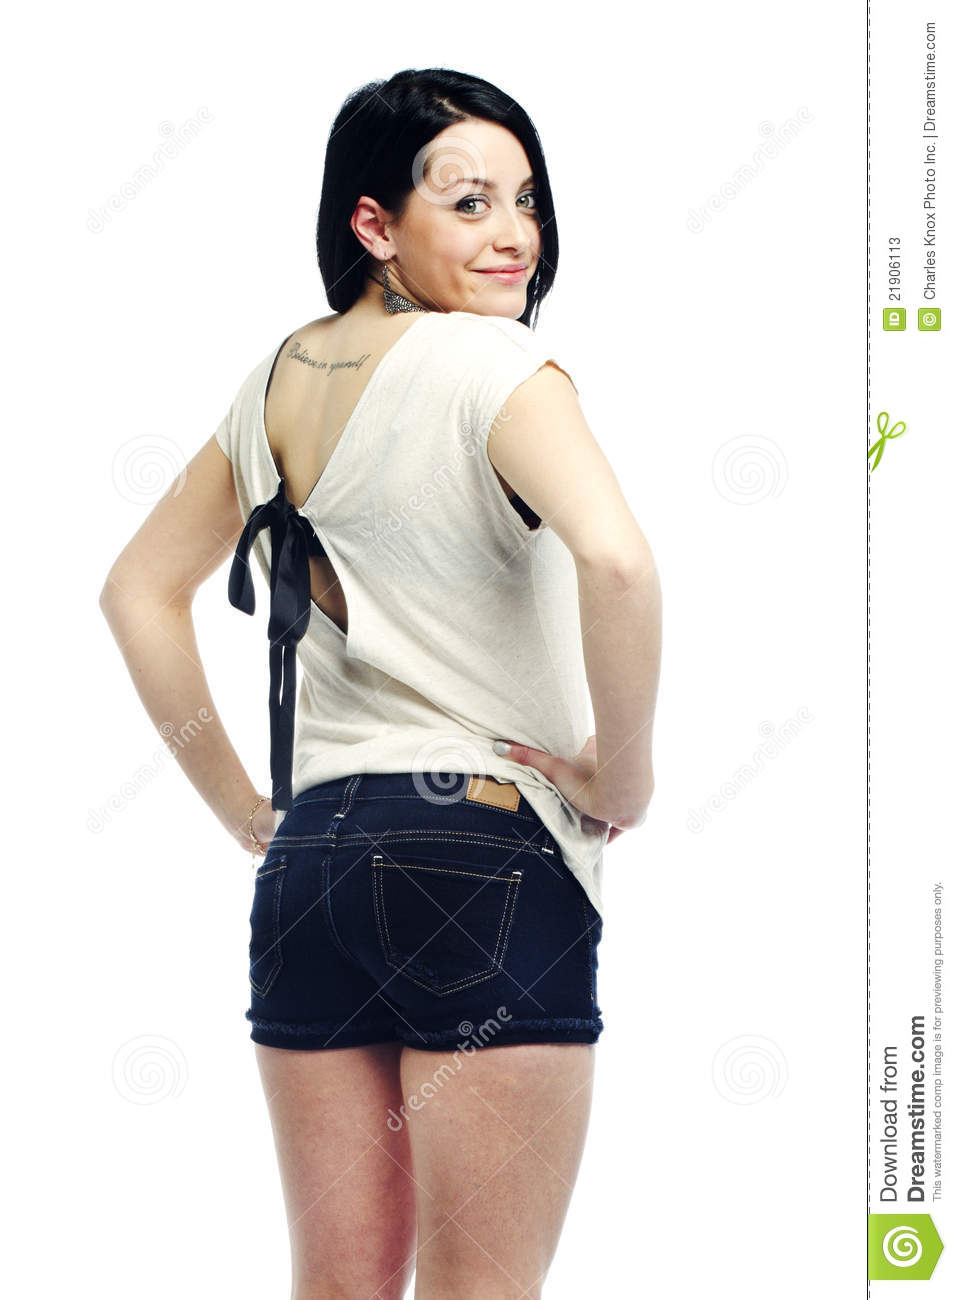 Woman with back turned